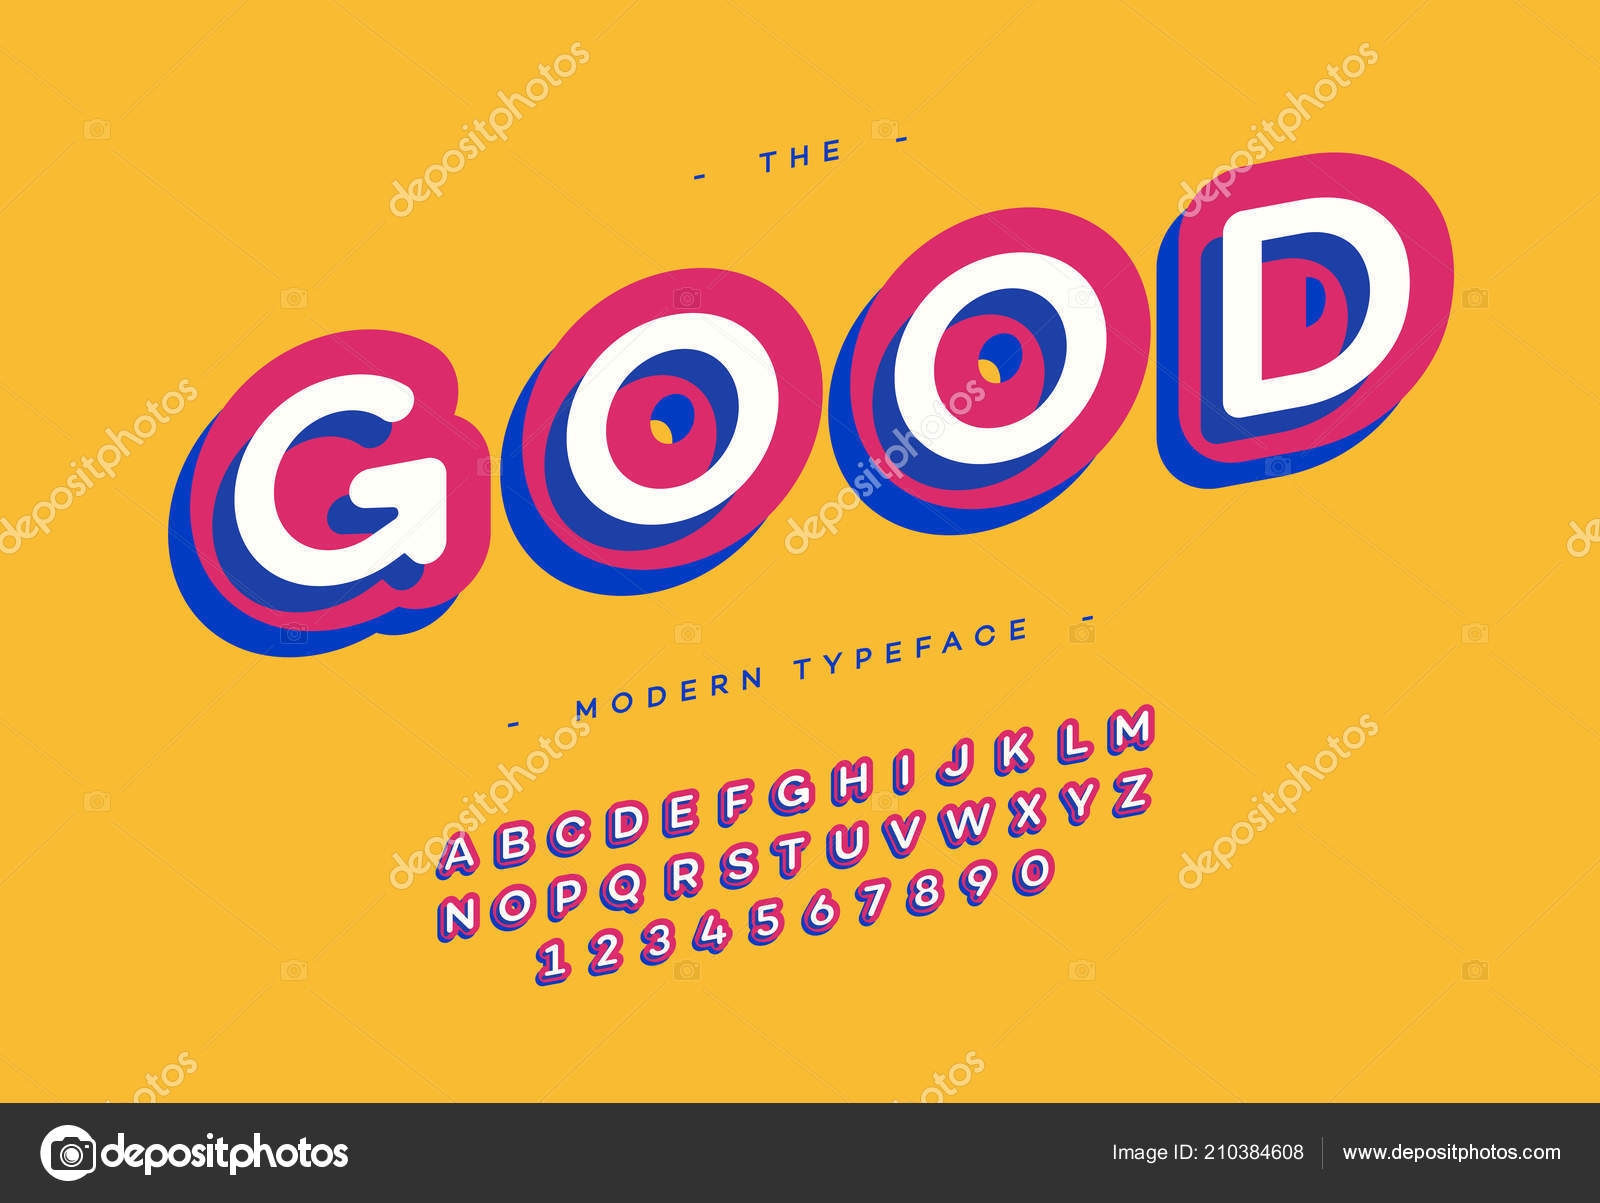 Vector Good Typeface 3d Bold Typography Colorful Style For Poster Decoration Promotion Book T Shirt Sale Banner Printing On Fabric Cool Modern